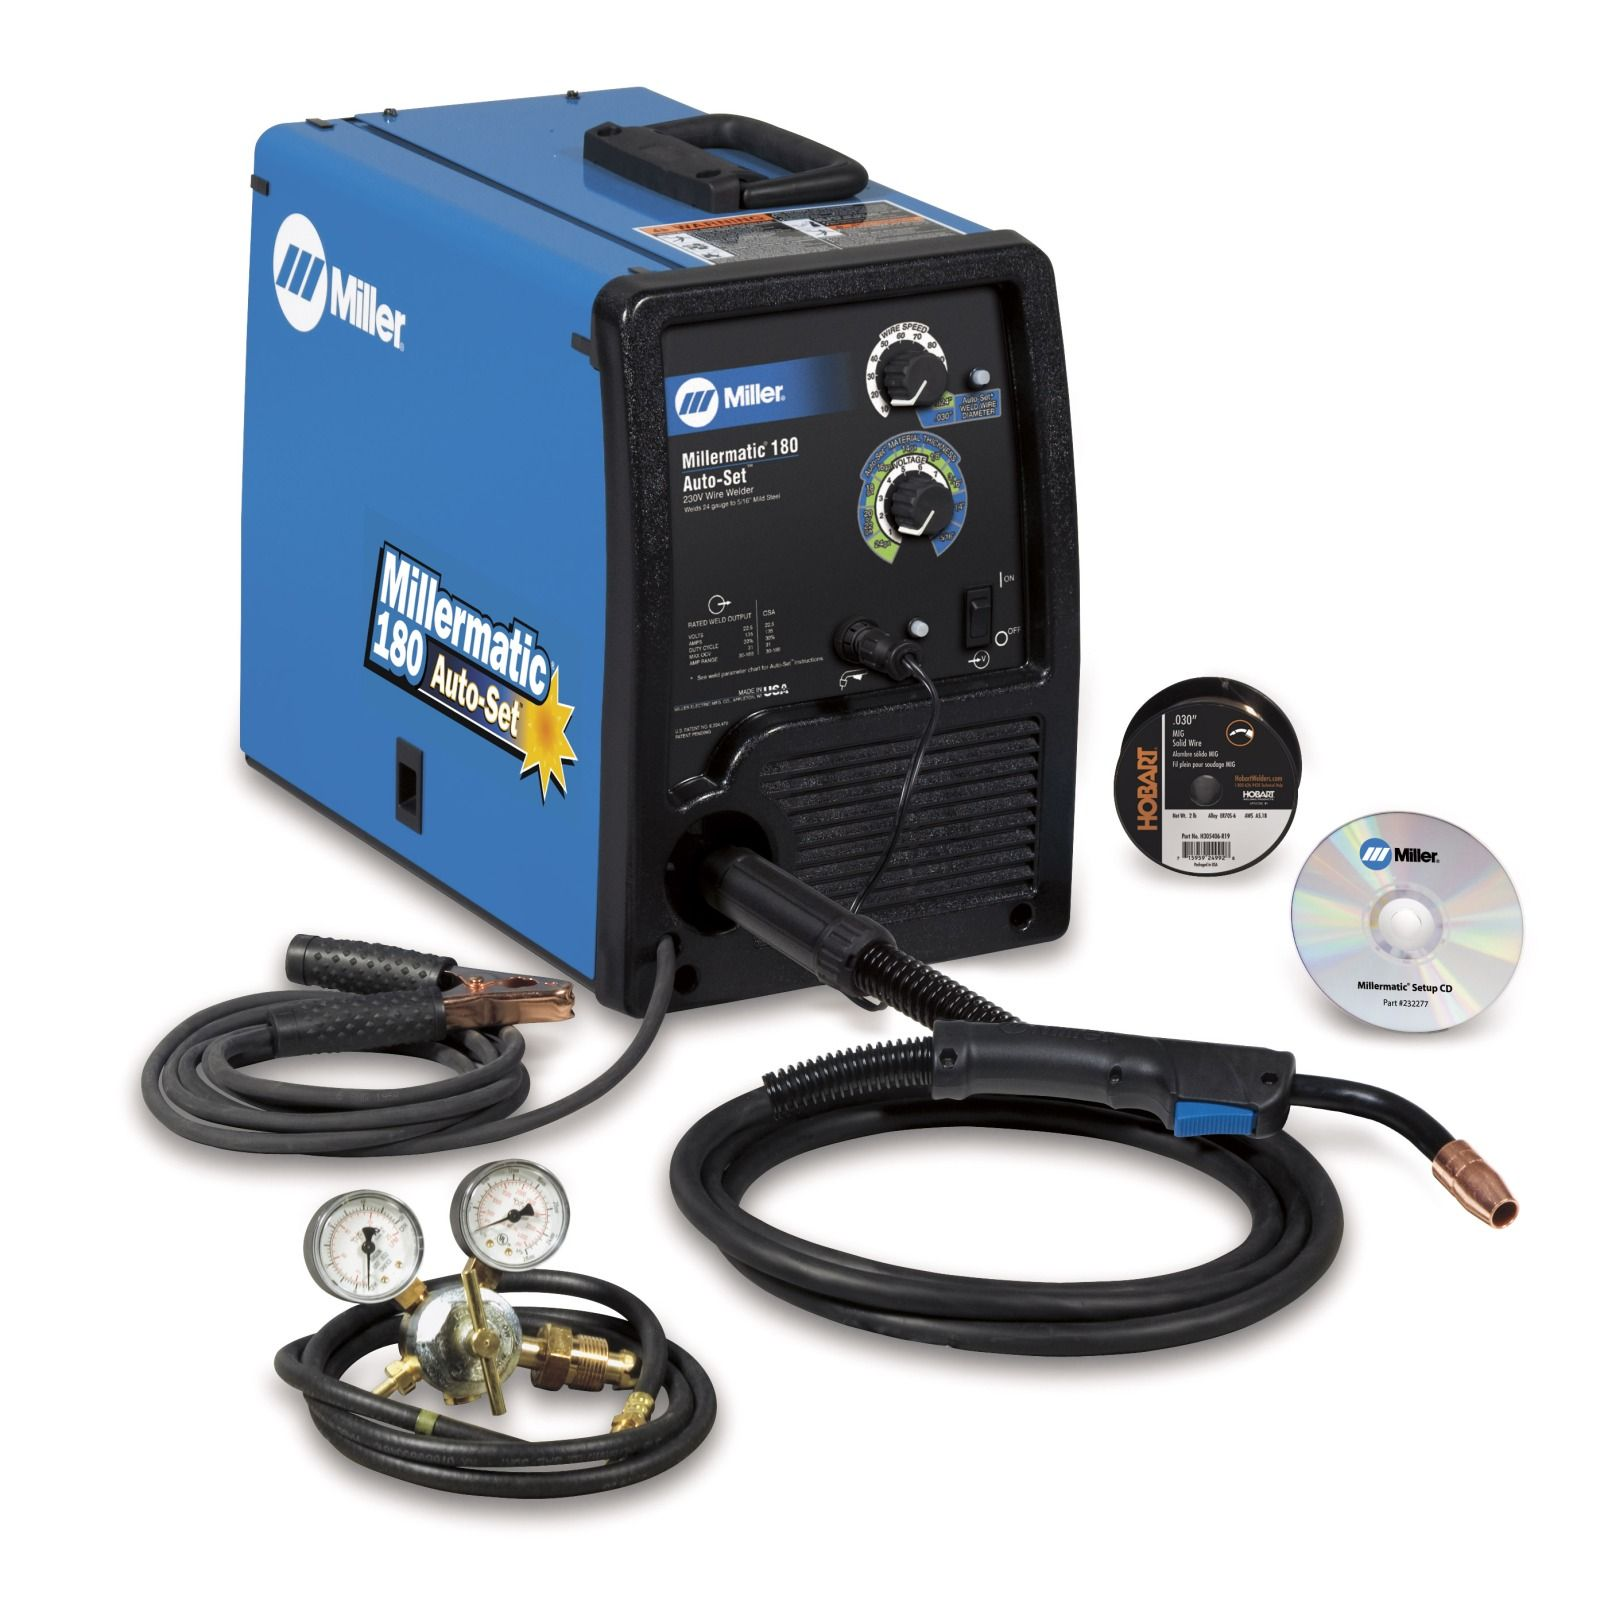 Miller Millermatic 180 MIG Welder with Auto-Set and Cart (951374)